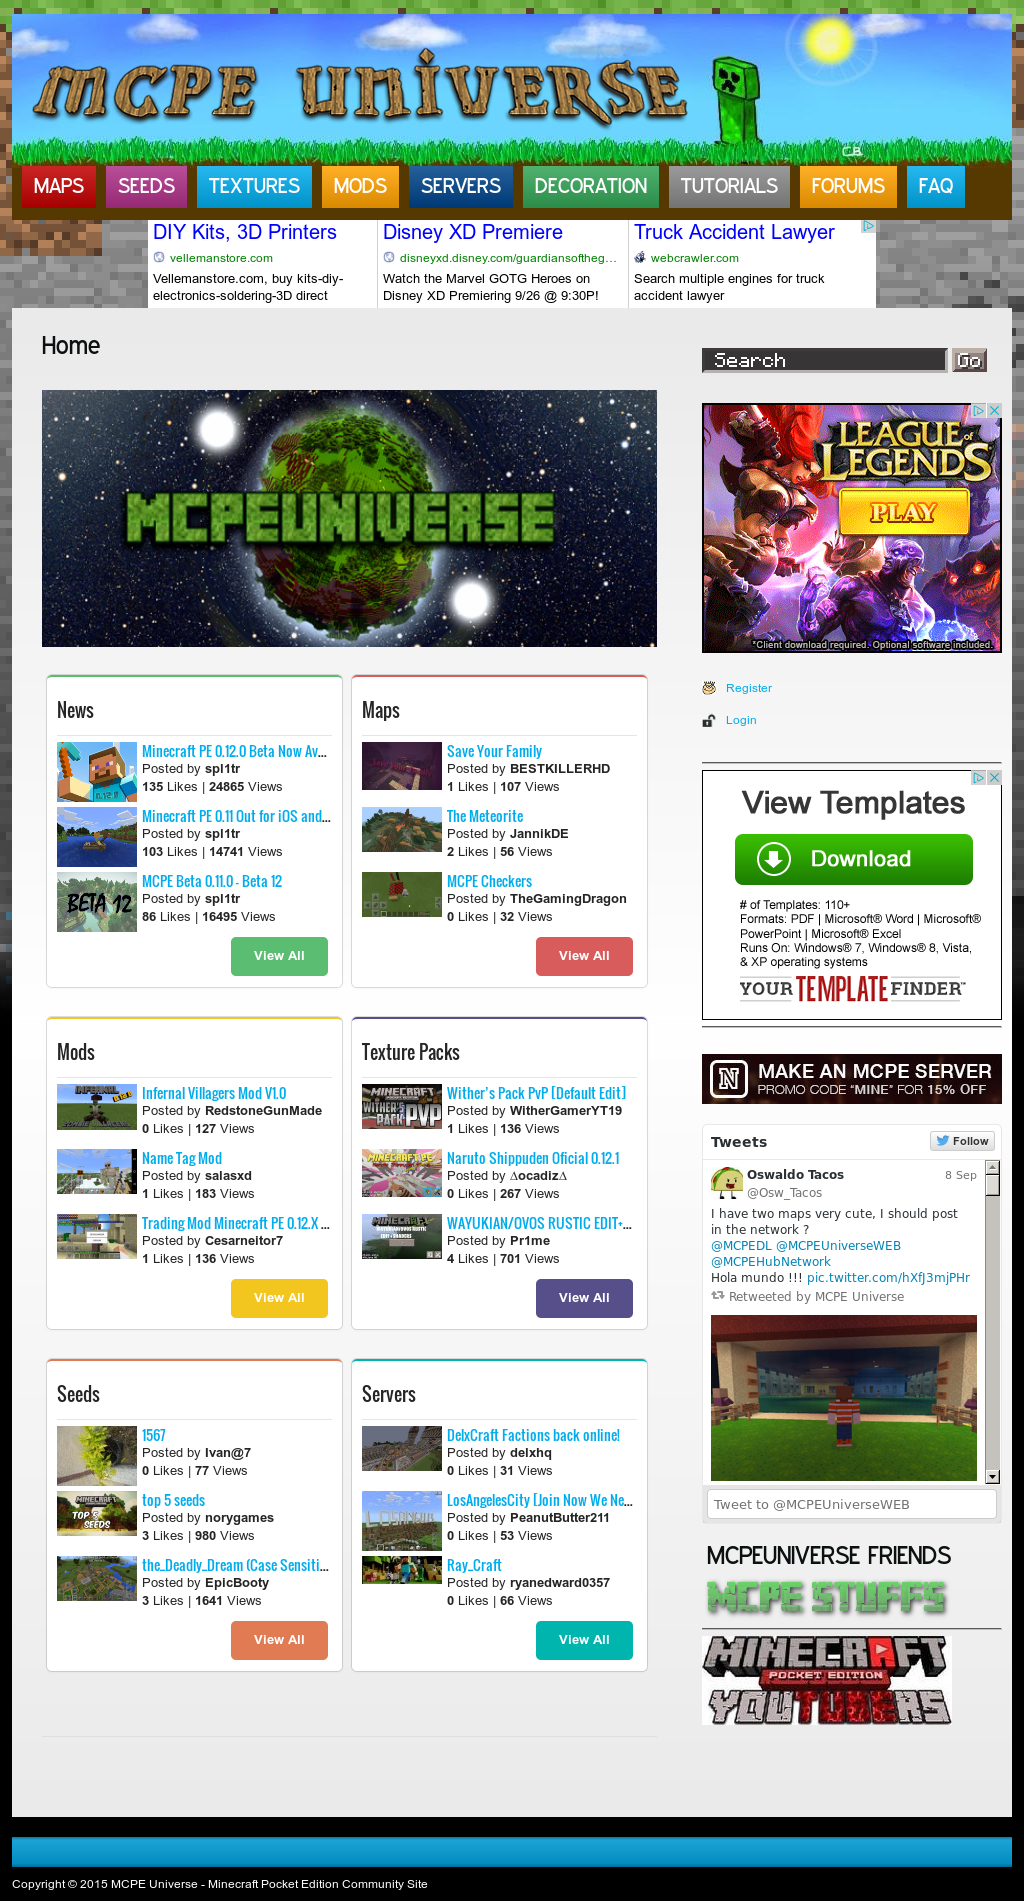 Mcpeuniverse Competitors, Revenue and Employees - Owler Company Profile